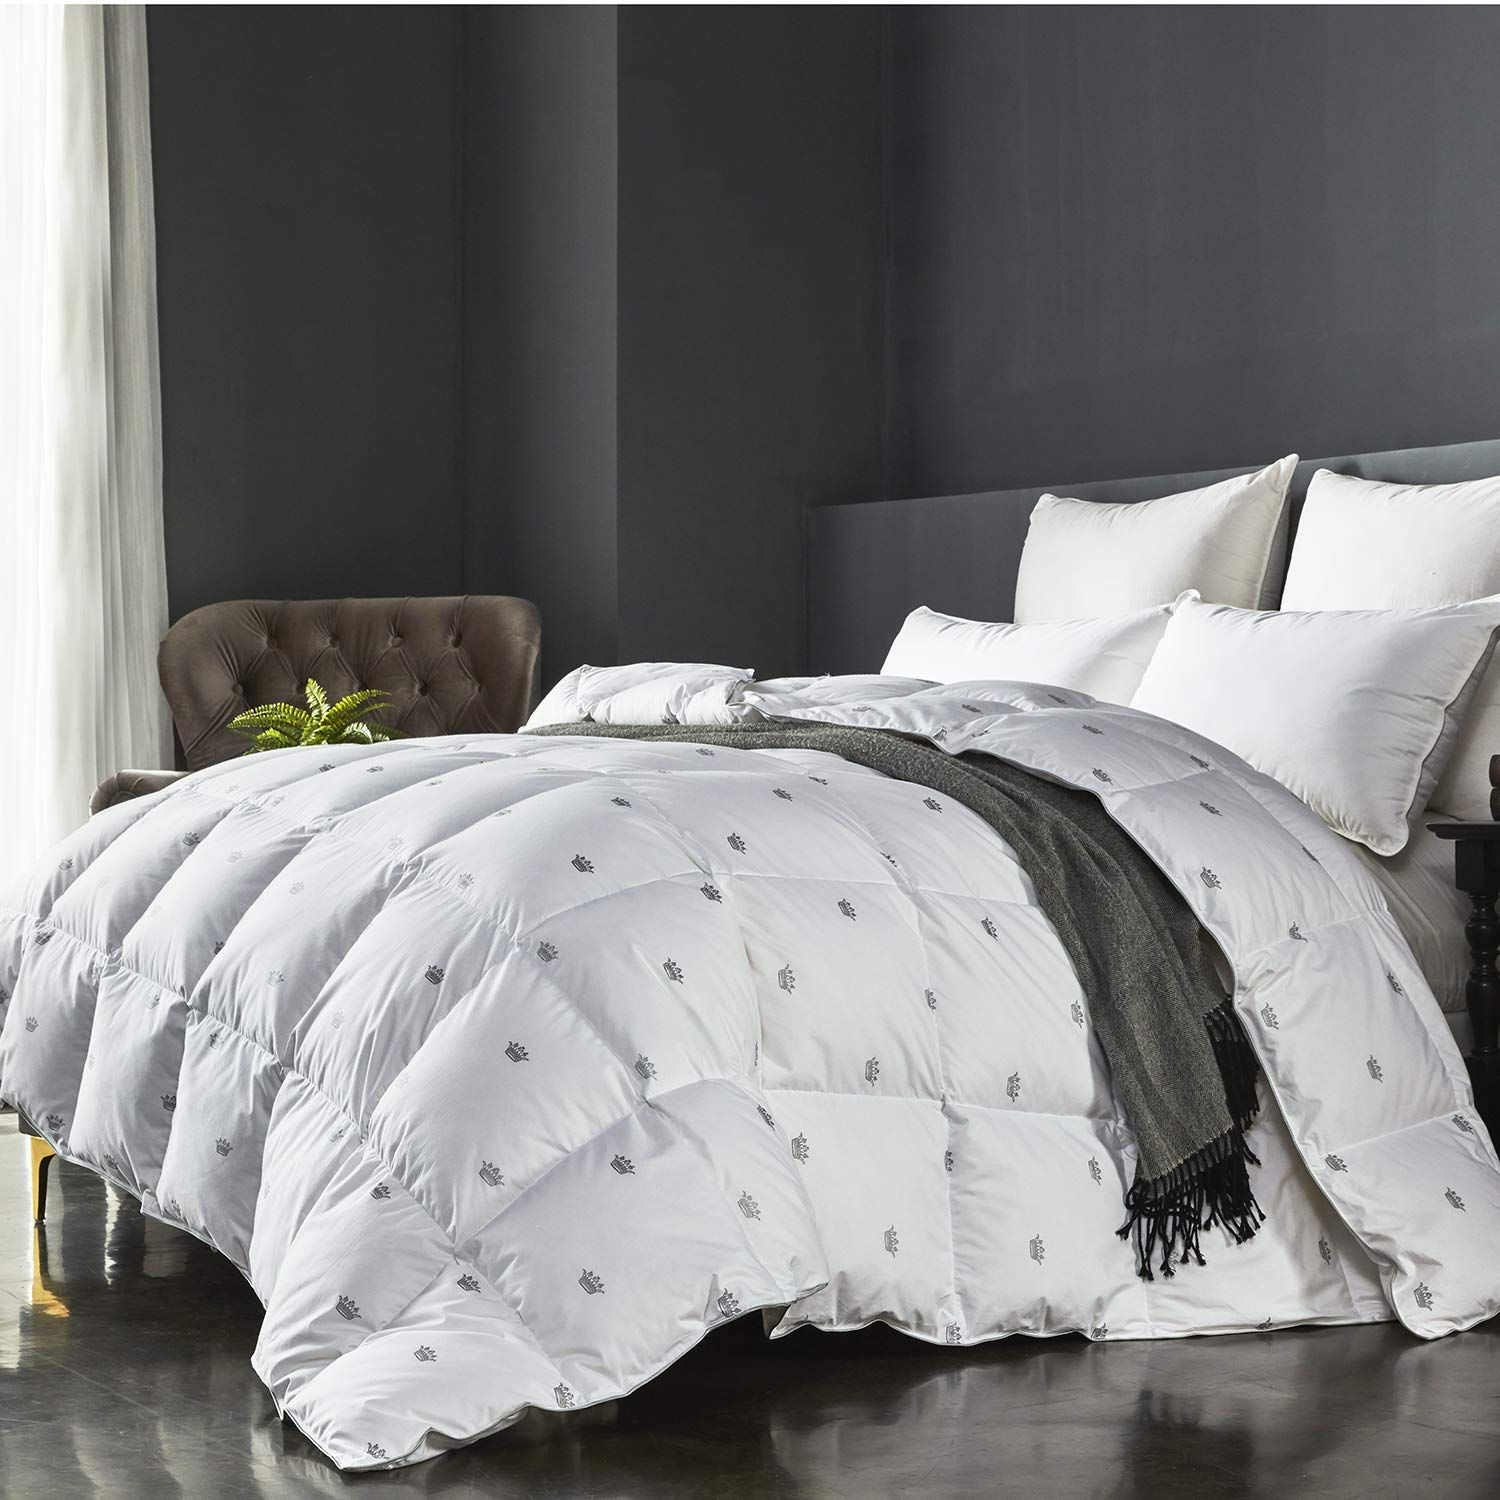 Sheone Winter Luxurious Goose Down Comforter King Size Duvet